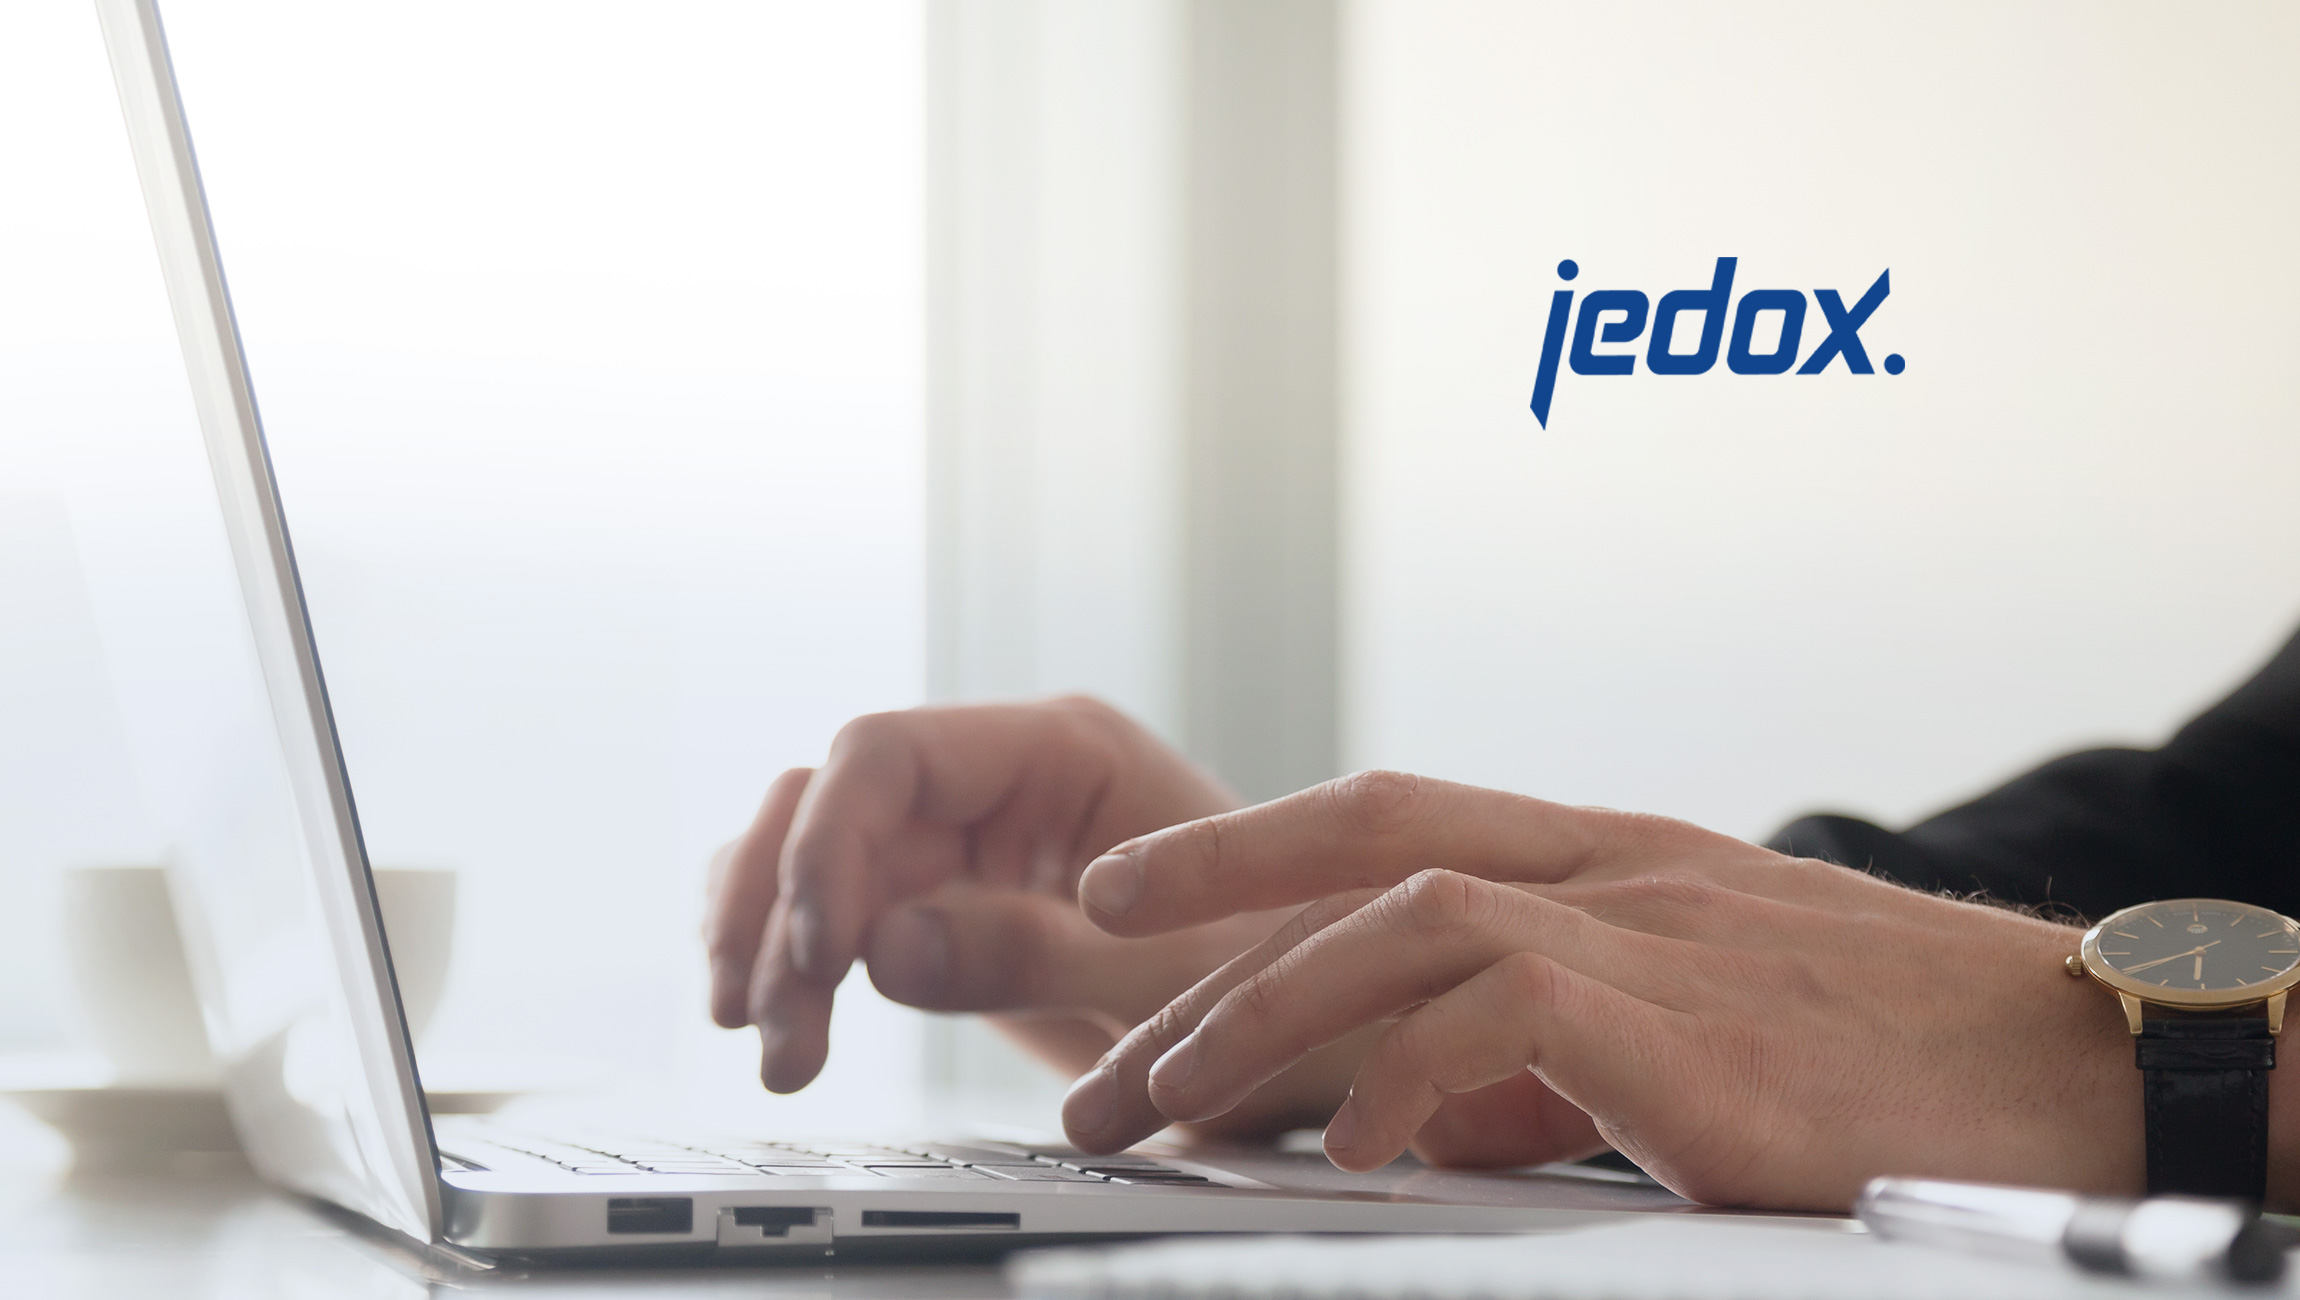 SaaS Provider Jedox Invests in Customer Satisfaction and Partner Focus